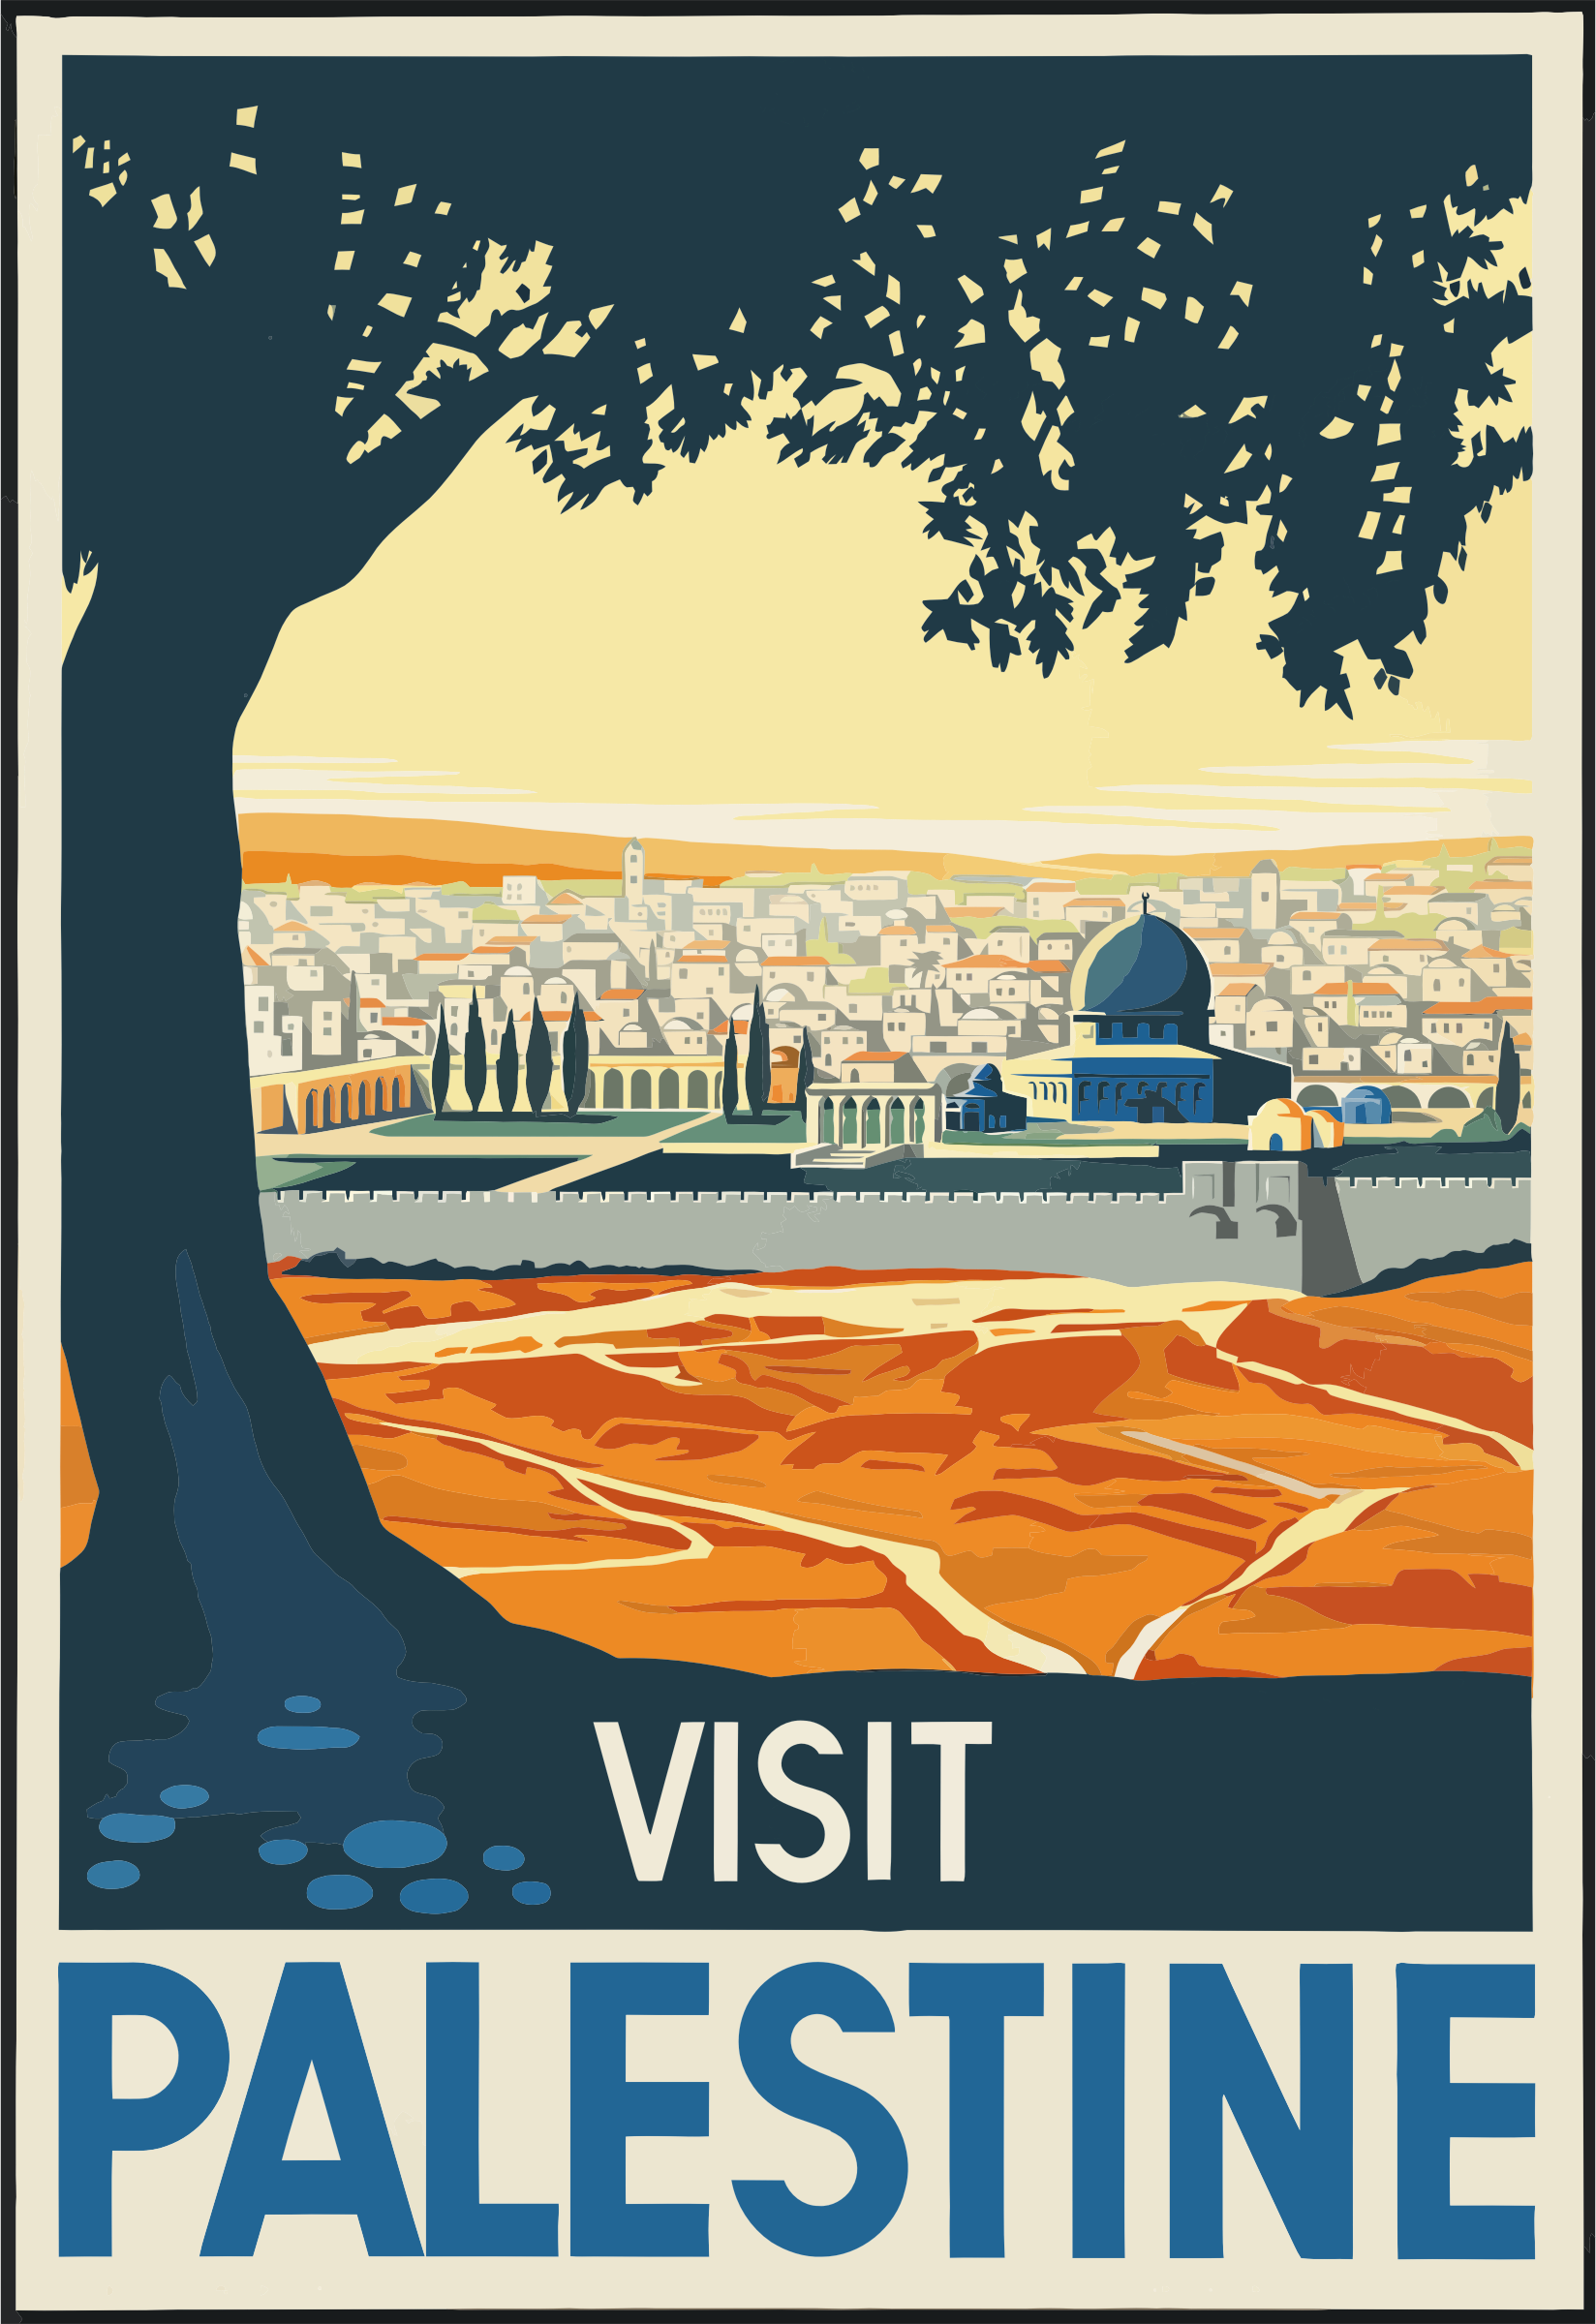 Vintage Travel Poster Palestine by GDJ